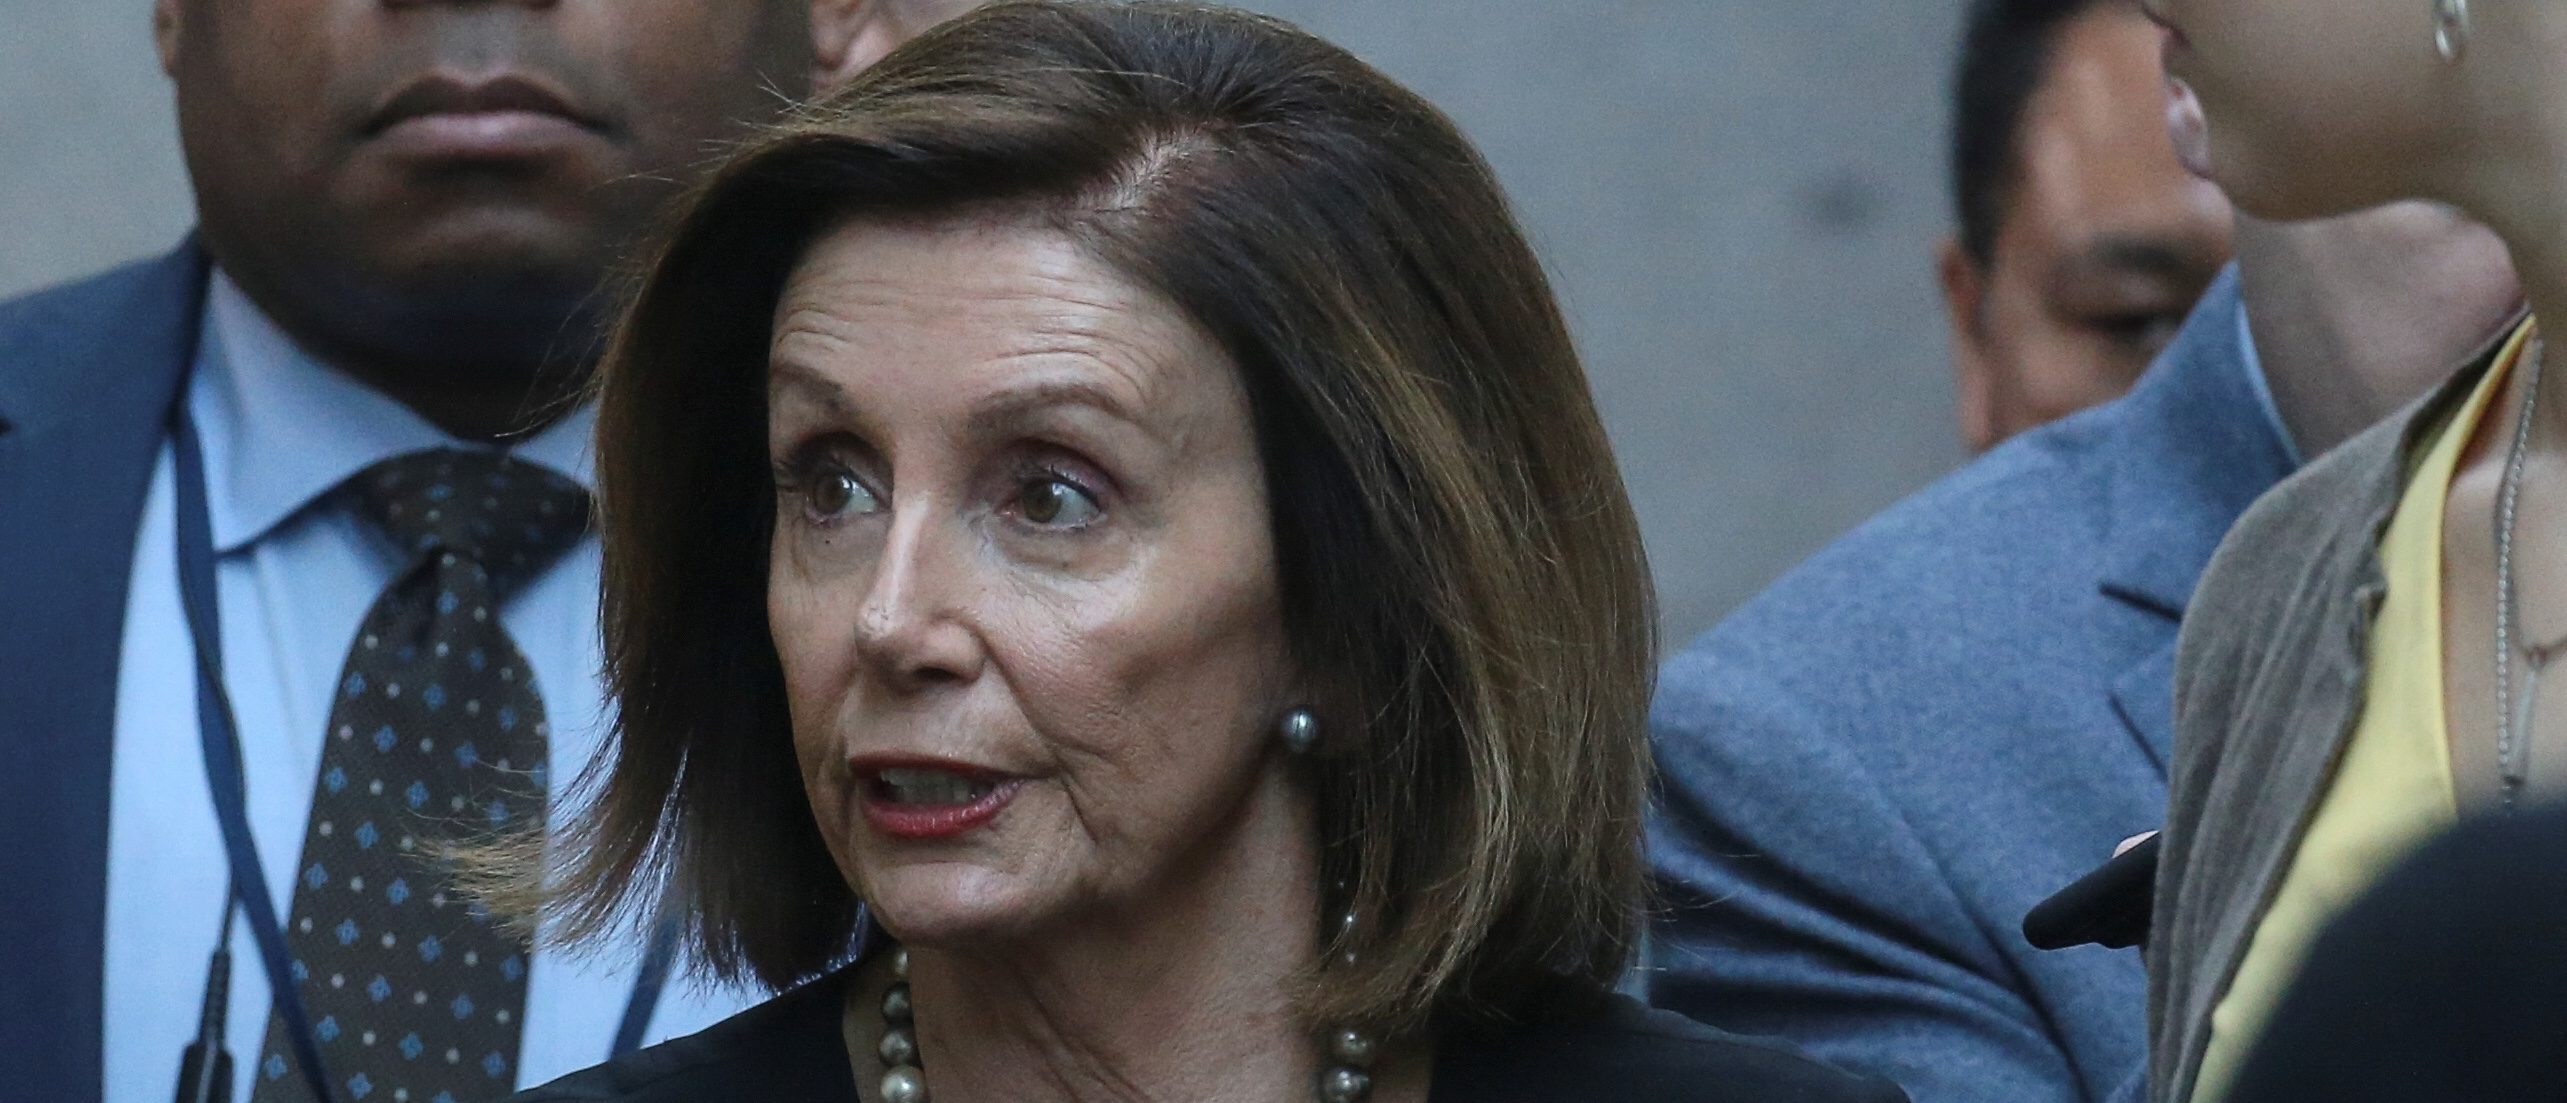 U.S. House Speaker Nancy Pelosi (D-CA) speaks to reporters as she arrives for a meeting at the U.S. Capitol in Washington, U.S., September 25, 2019. REUTERS/Leah Millis